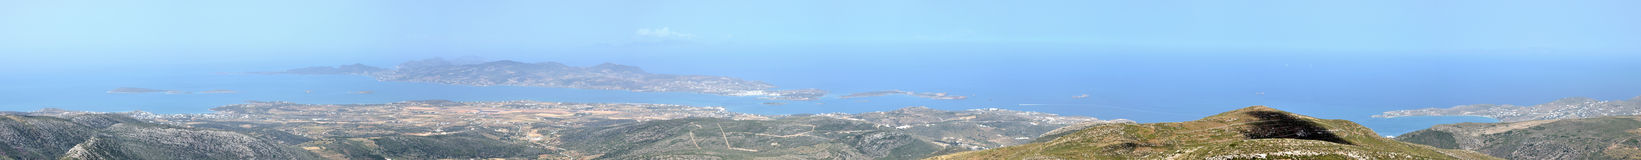 Greece, Antiparos panorama Royalty Free Stock Images